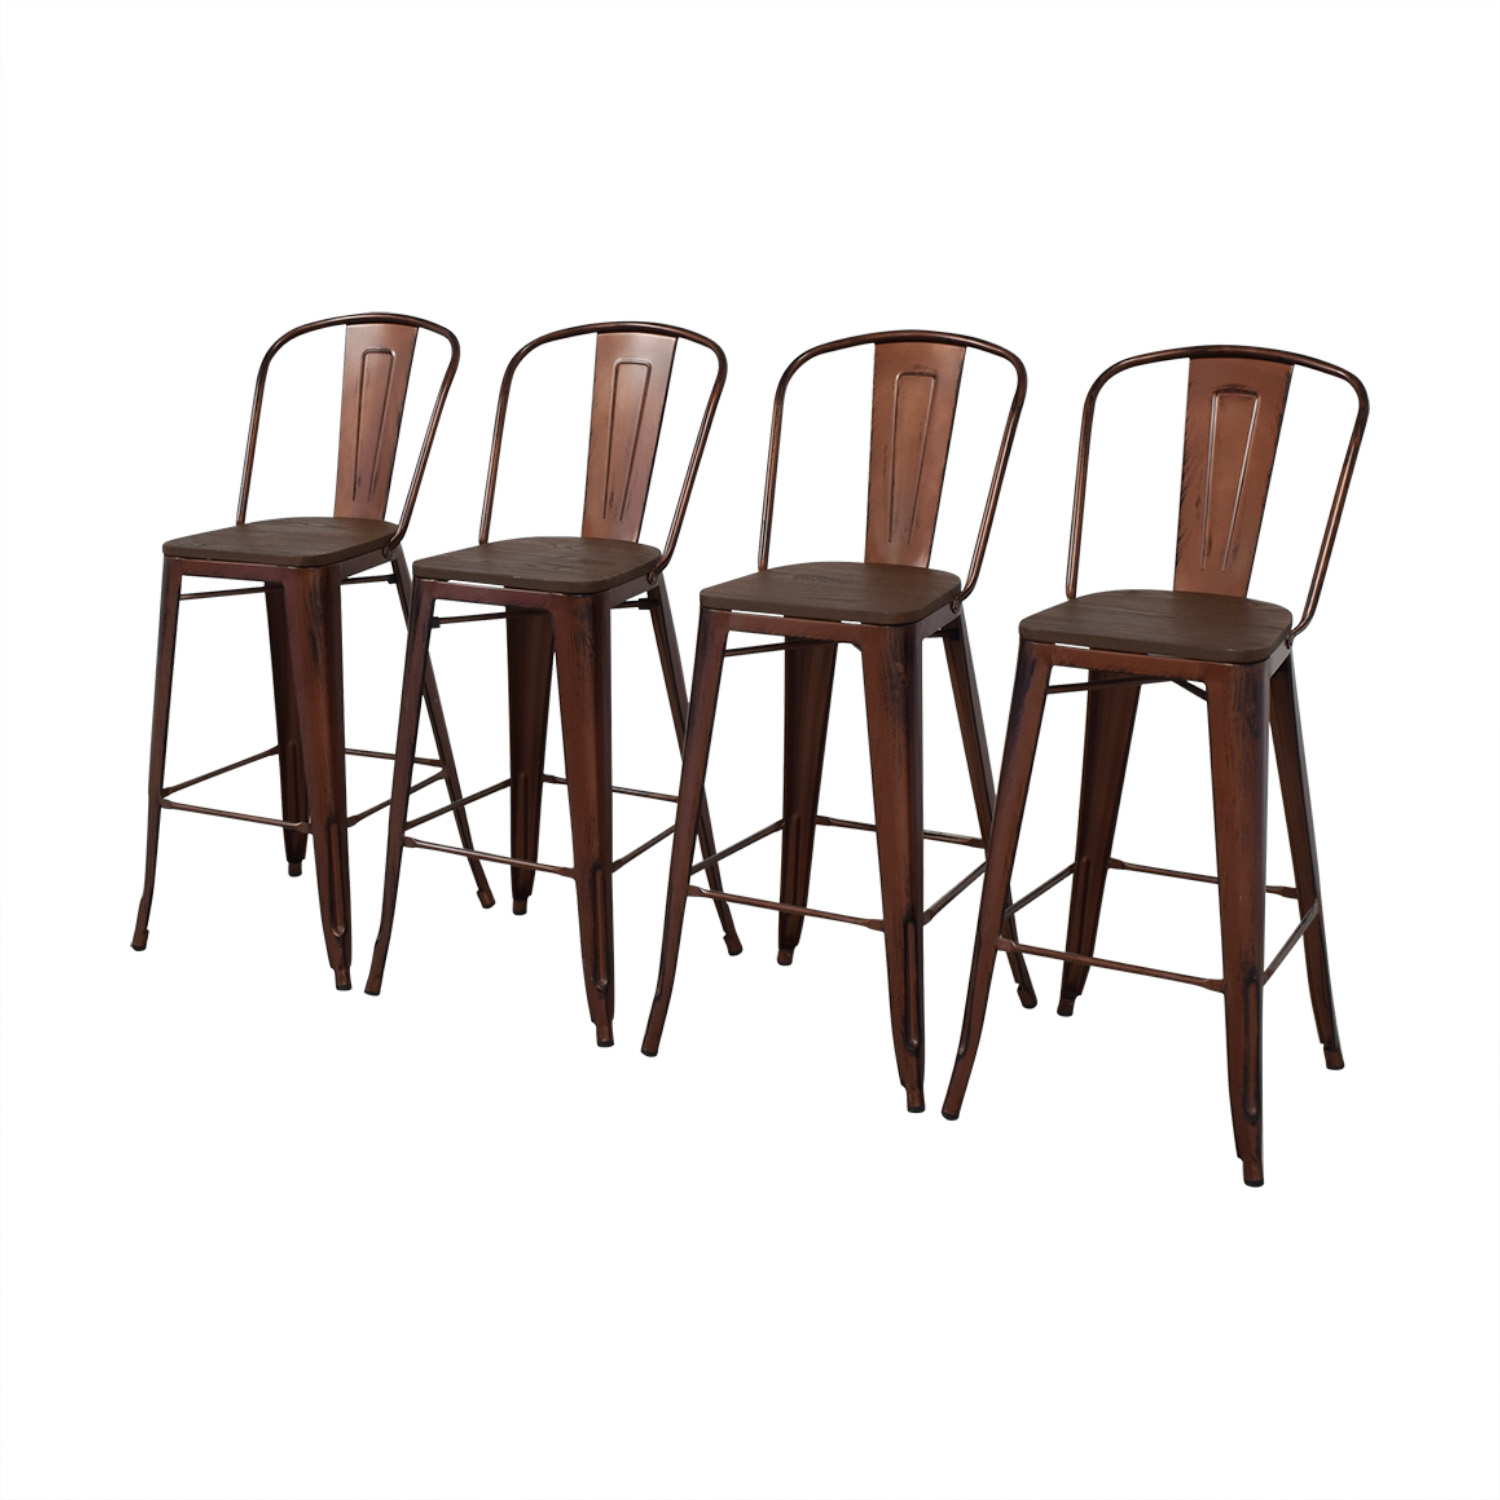 Overstock Overstock Tabouret Wood Seat Brushed Copper Bistro Bar Stools dimensions